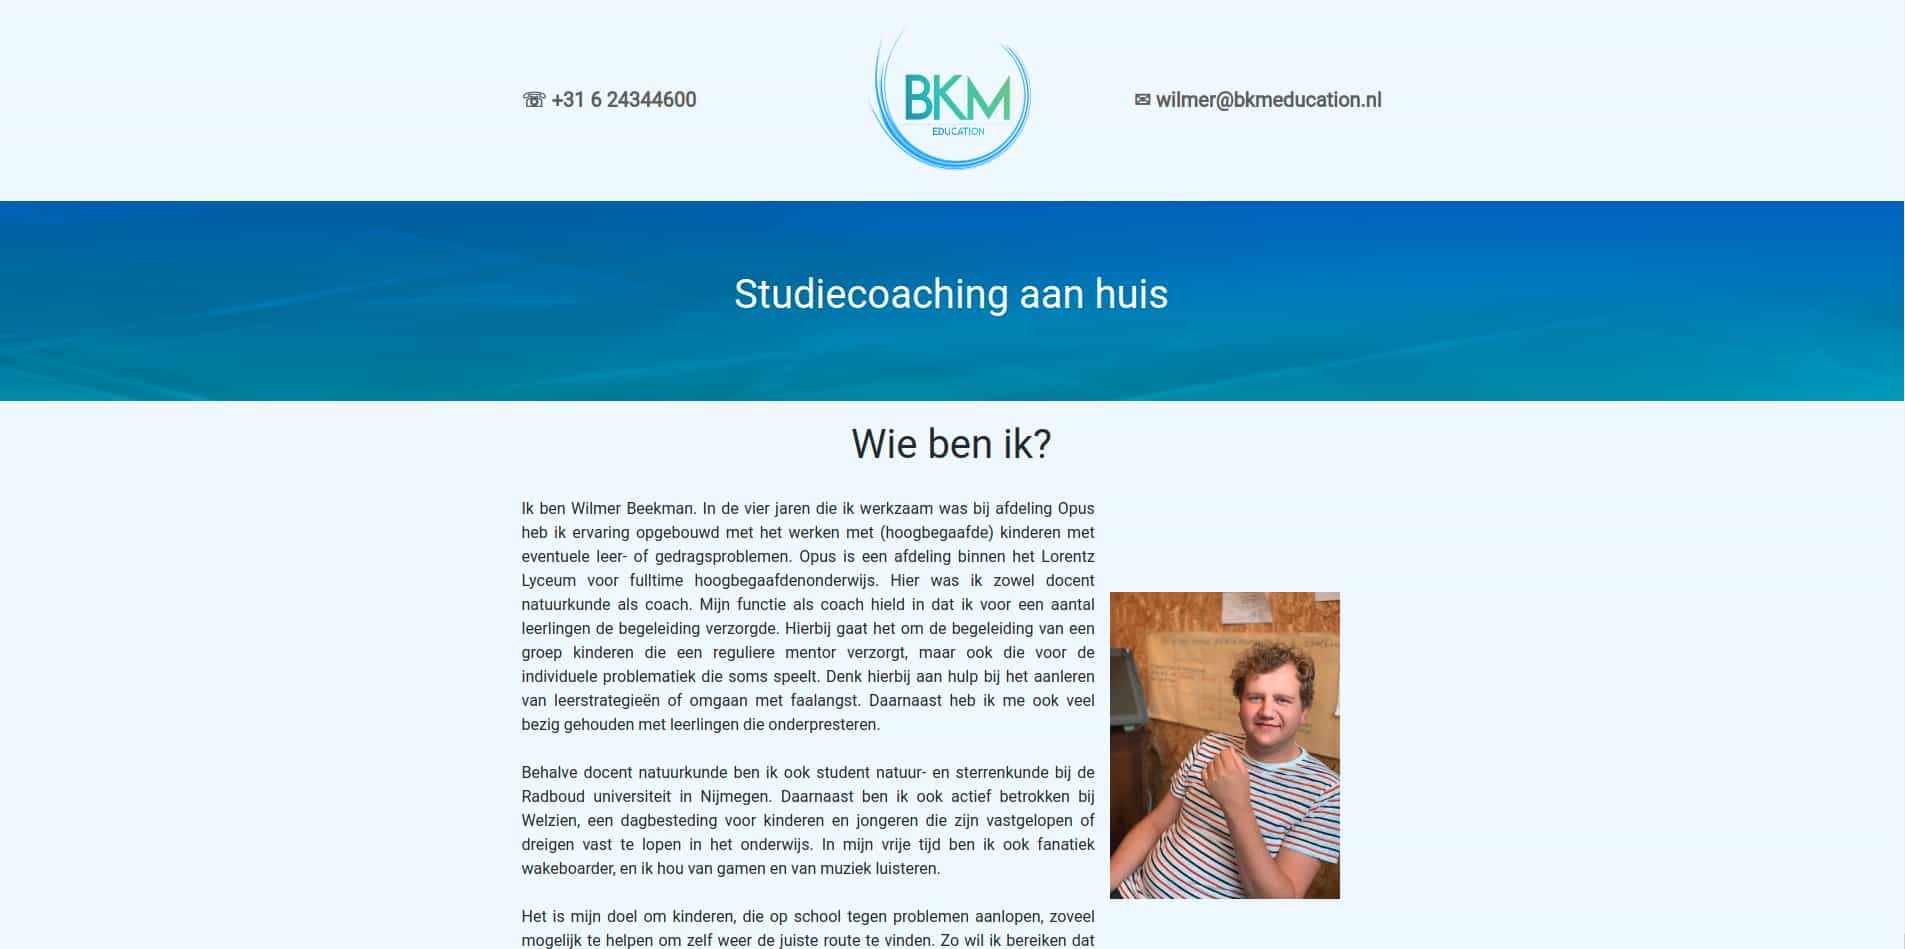 BKM Education